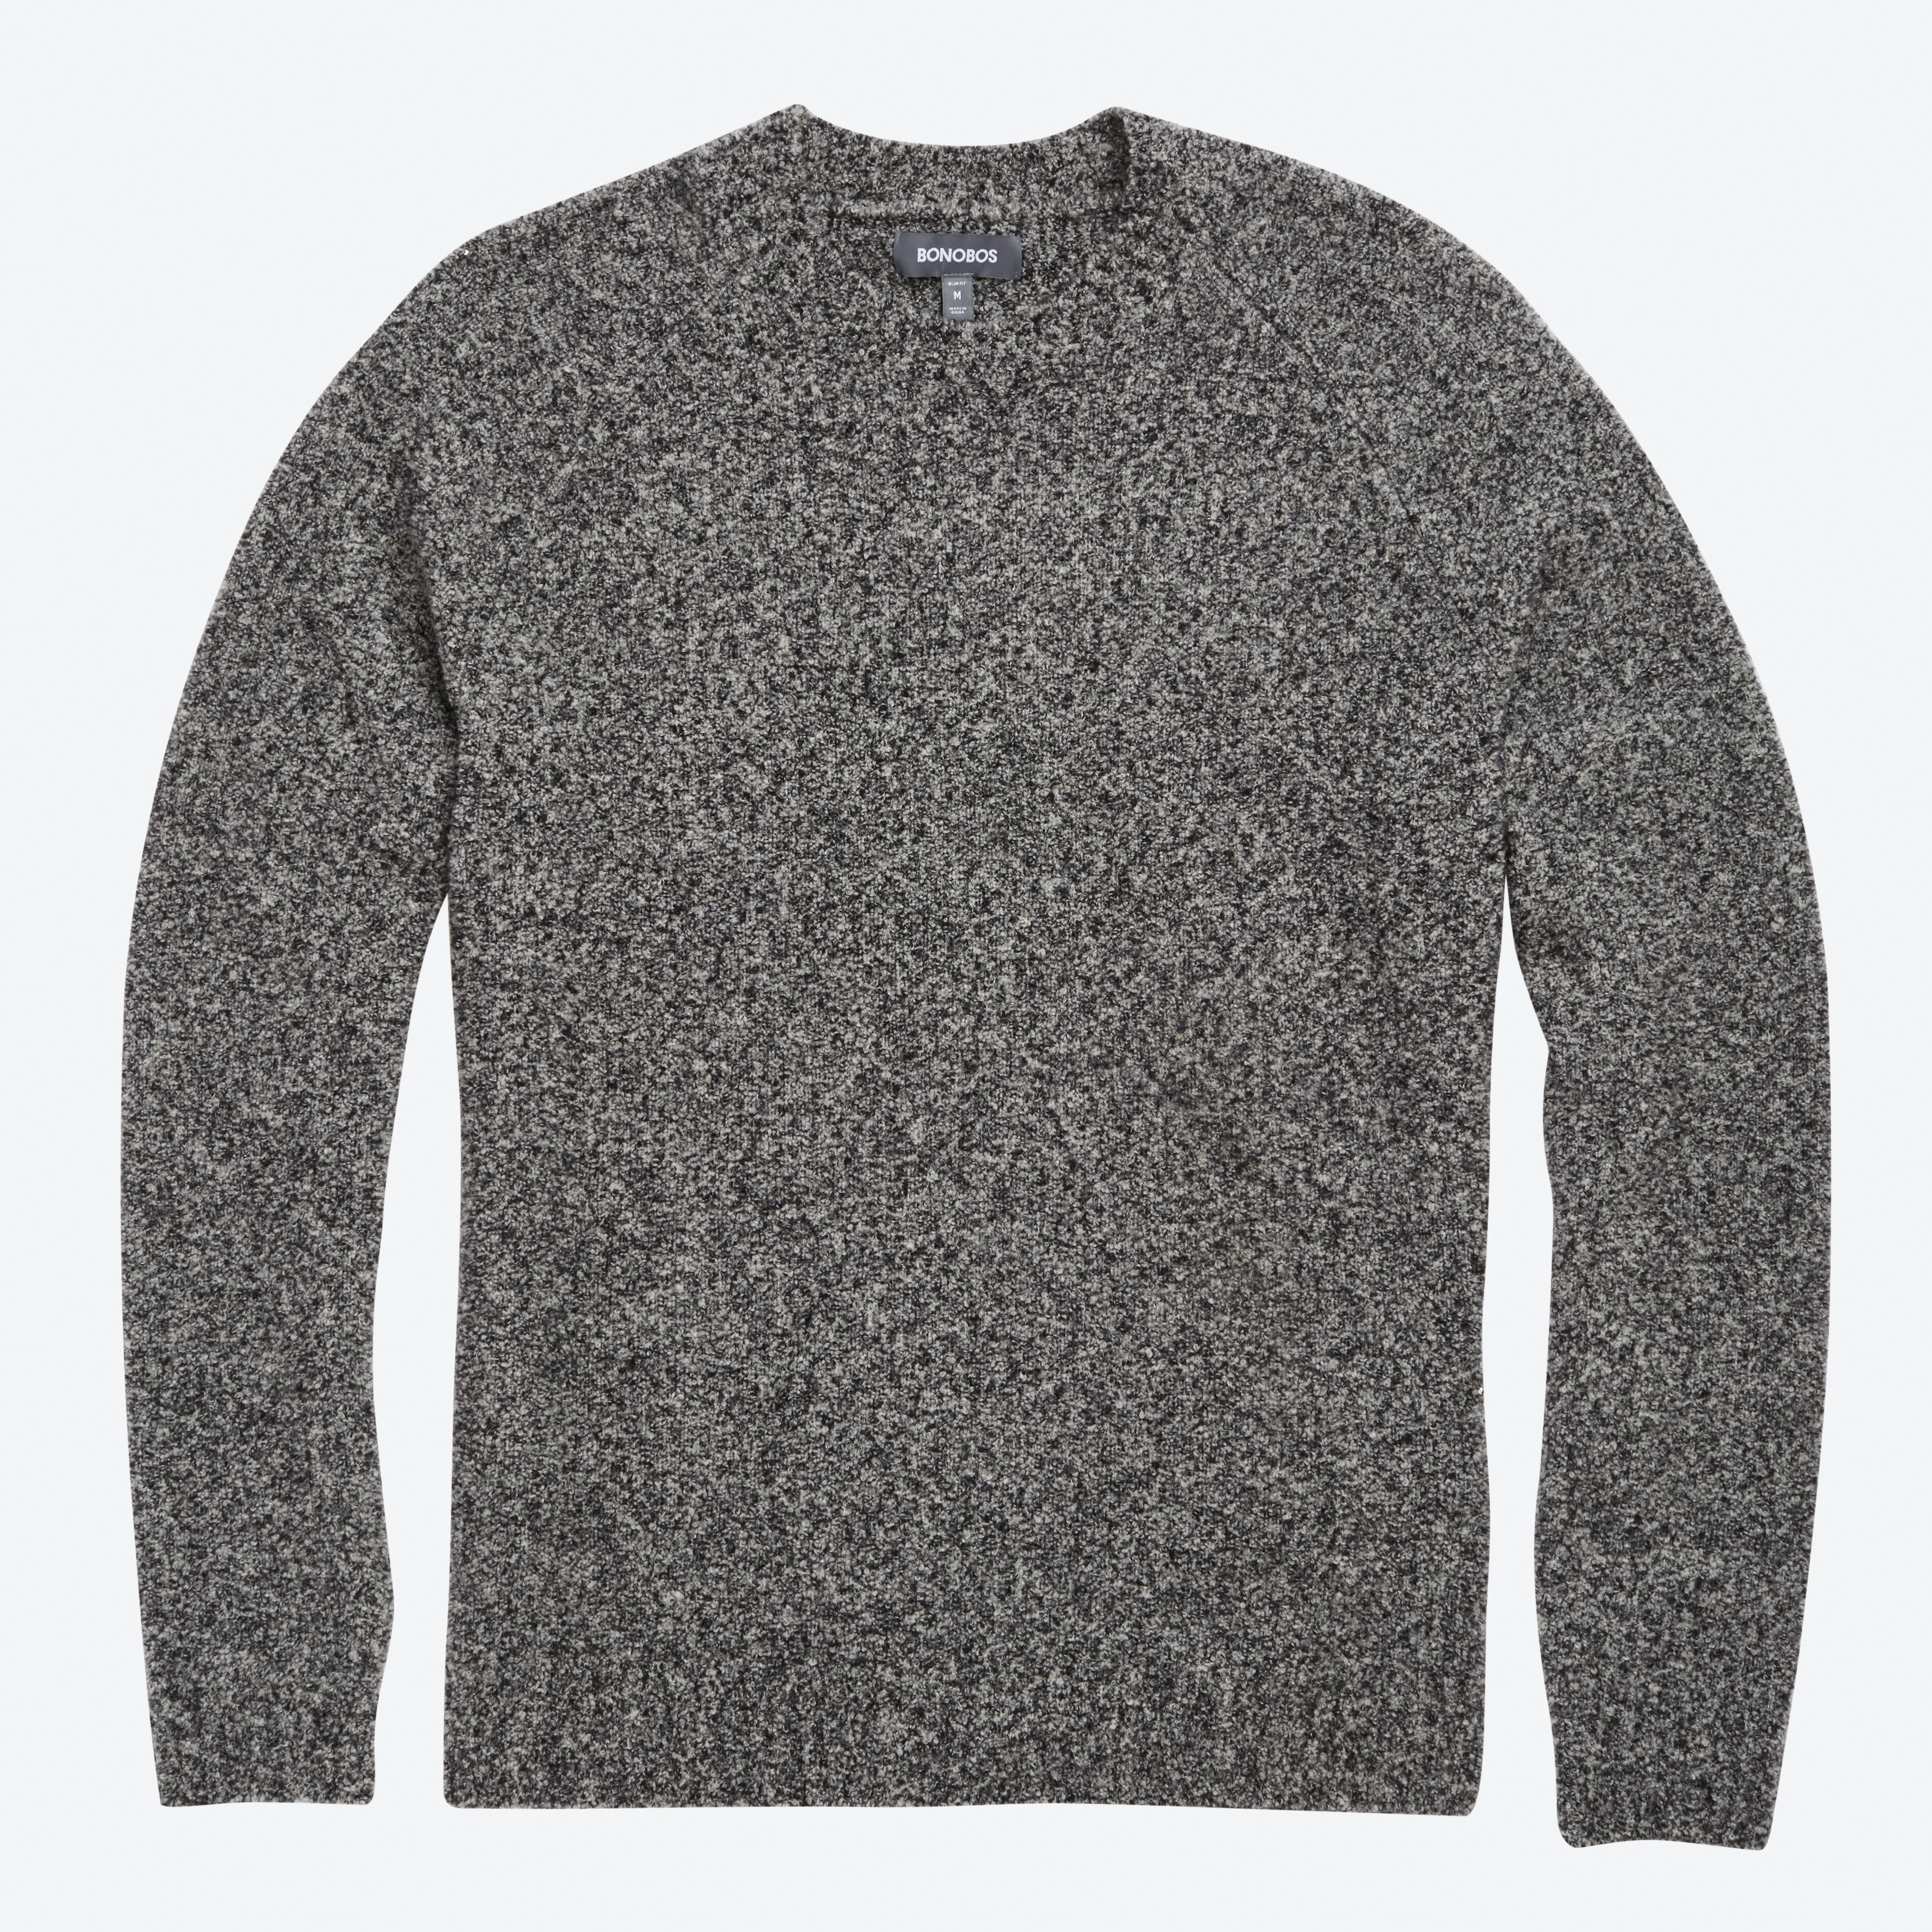 Boucle Crew Neck Sweater